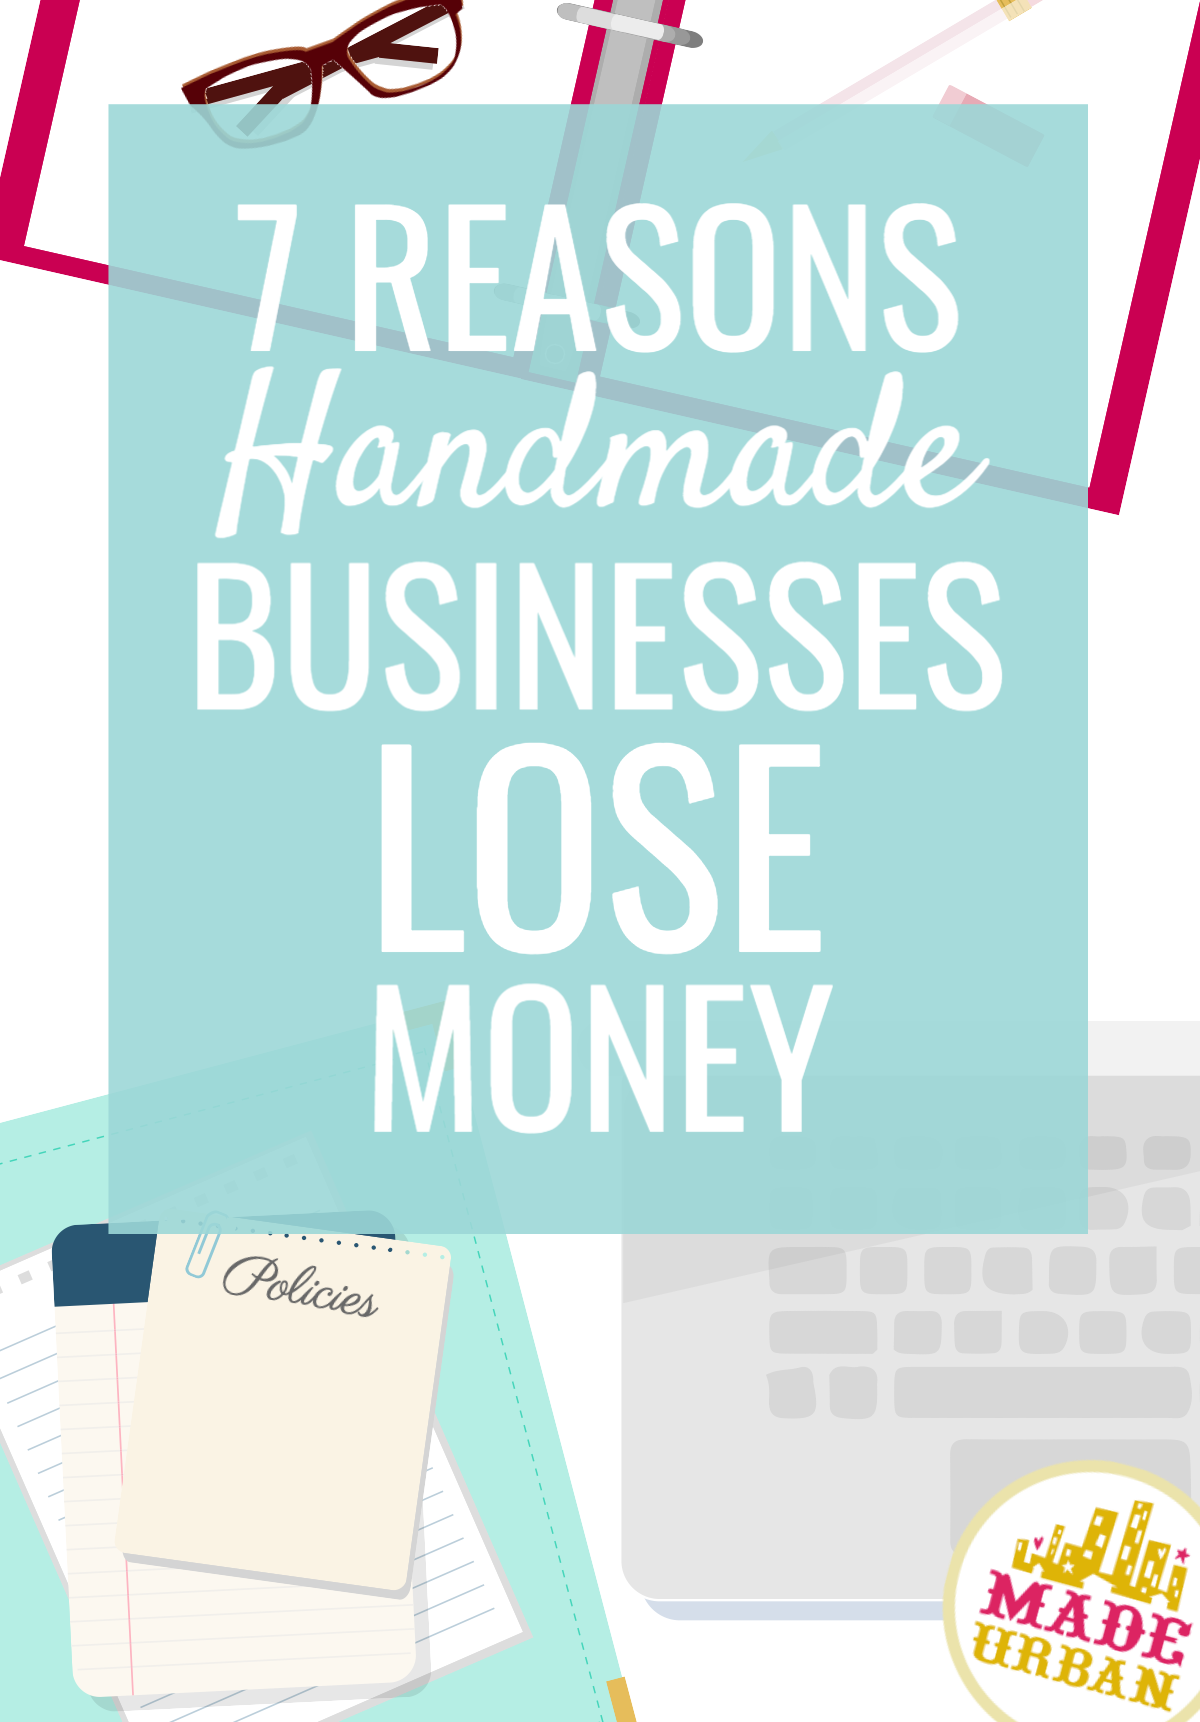 Handmade businesses tend to be really accommodating with their customers. Sometimes to the point they lose money and don't realize. Here's what to watch for